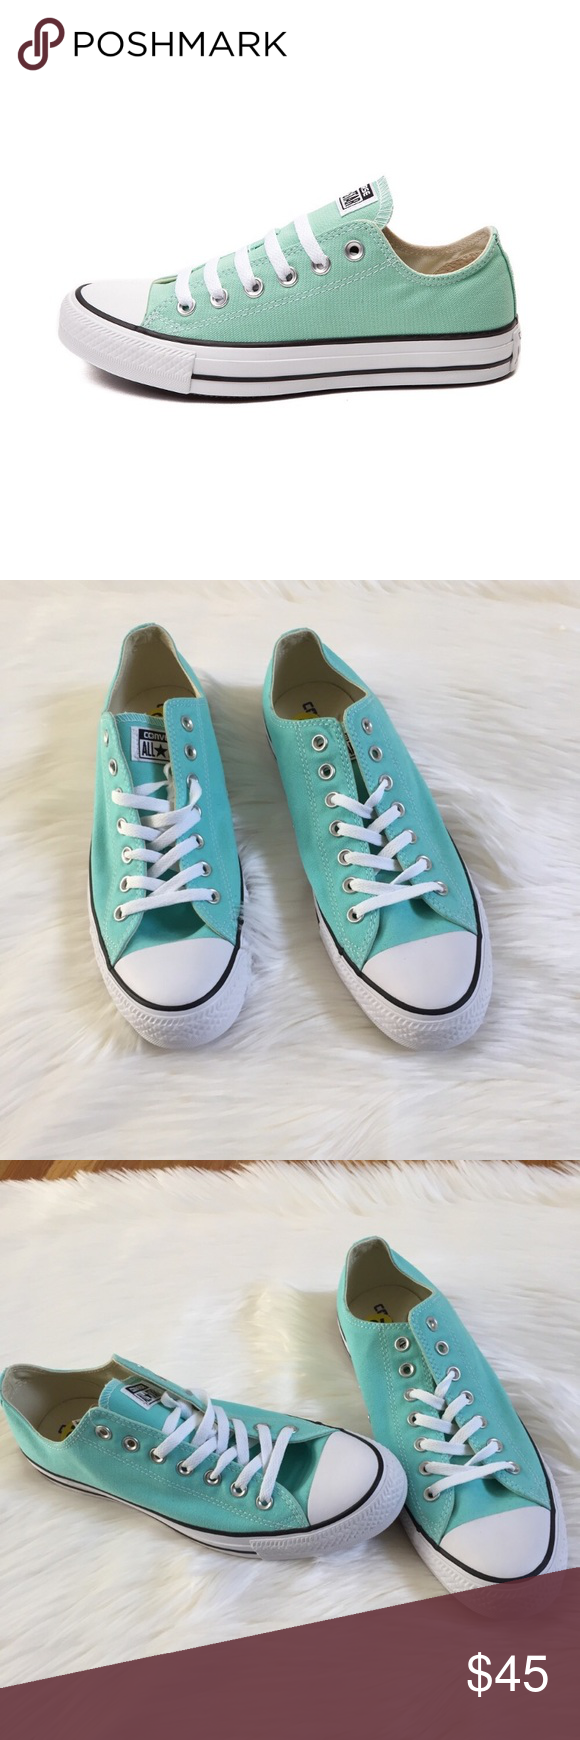 0a25caaf725c Chuck Taylor All Star Mint Green Converse Sneakers Chuck Taylor All Star  Mint Green Converse Sneakers New without Box Size Men s  11 Women s  13  Converse ...